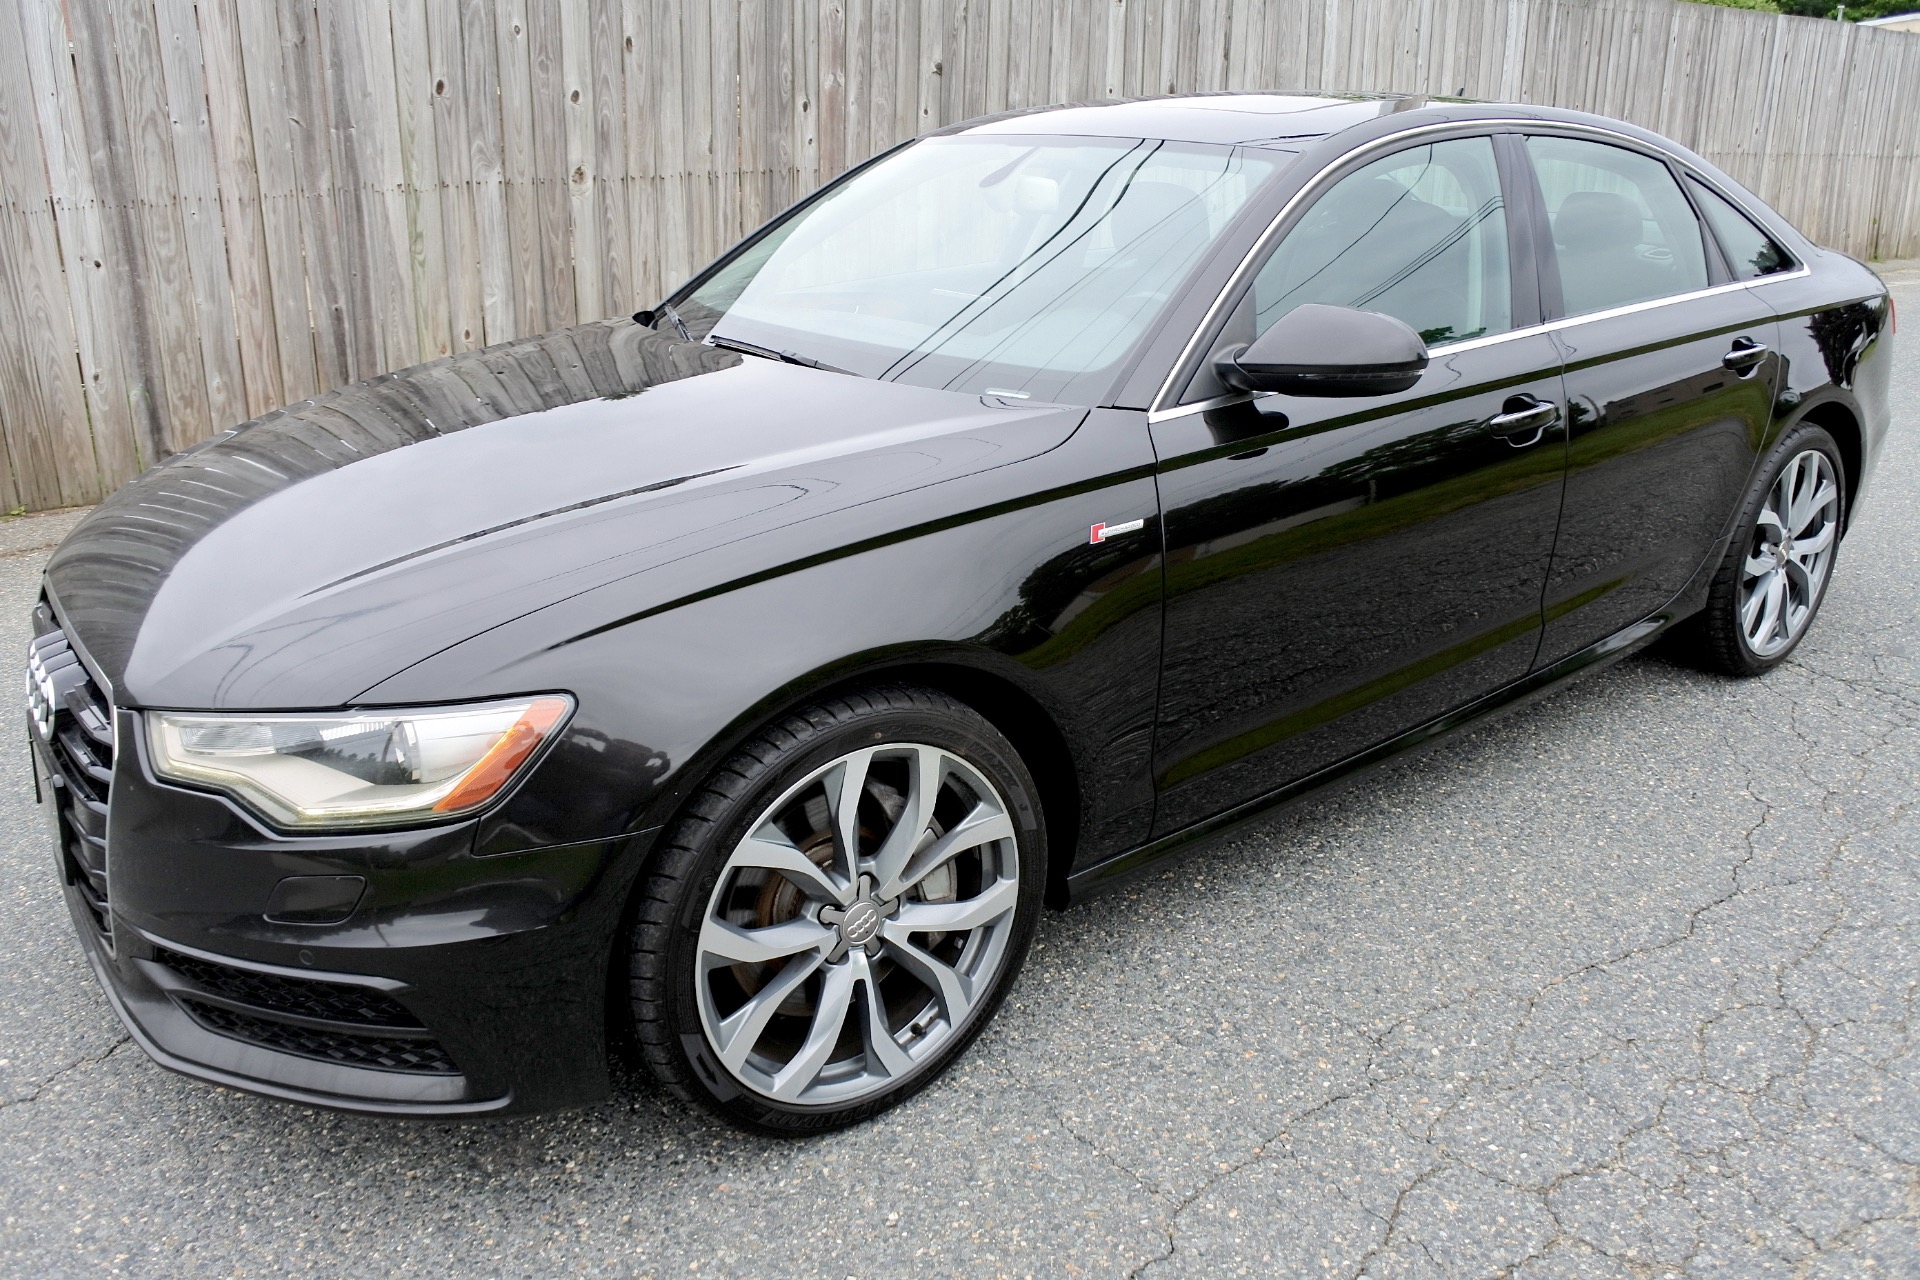 Used 2013 Audi A6 4dr Sdn quattro 3.0T Prestige Used 2013 Audi A6 4dr Sdn quattro 3.0T Prestige for sale  at Metro West Motorcars LLC in Shrewsbury MA 1